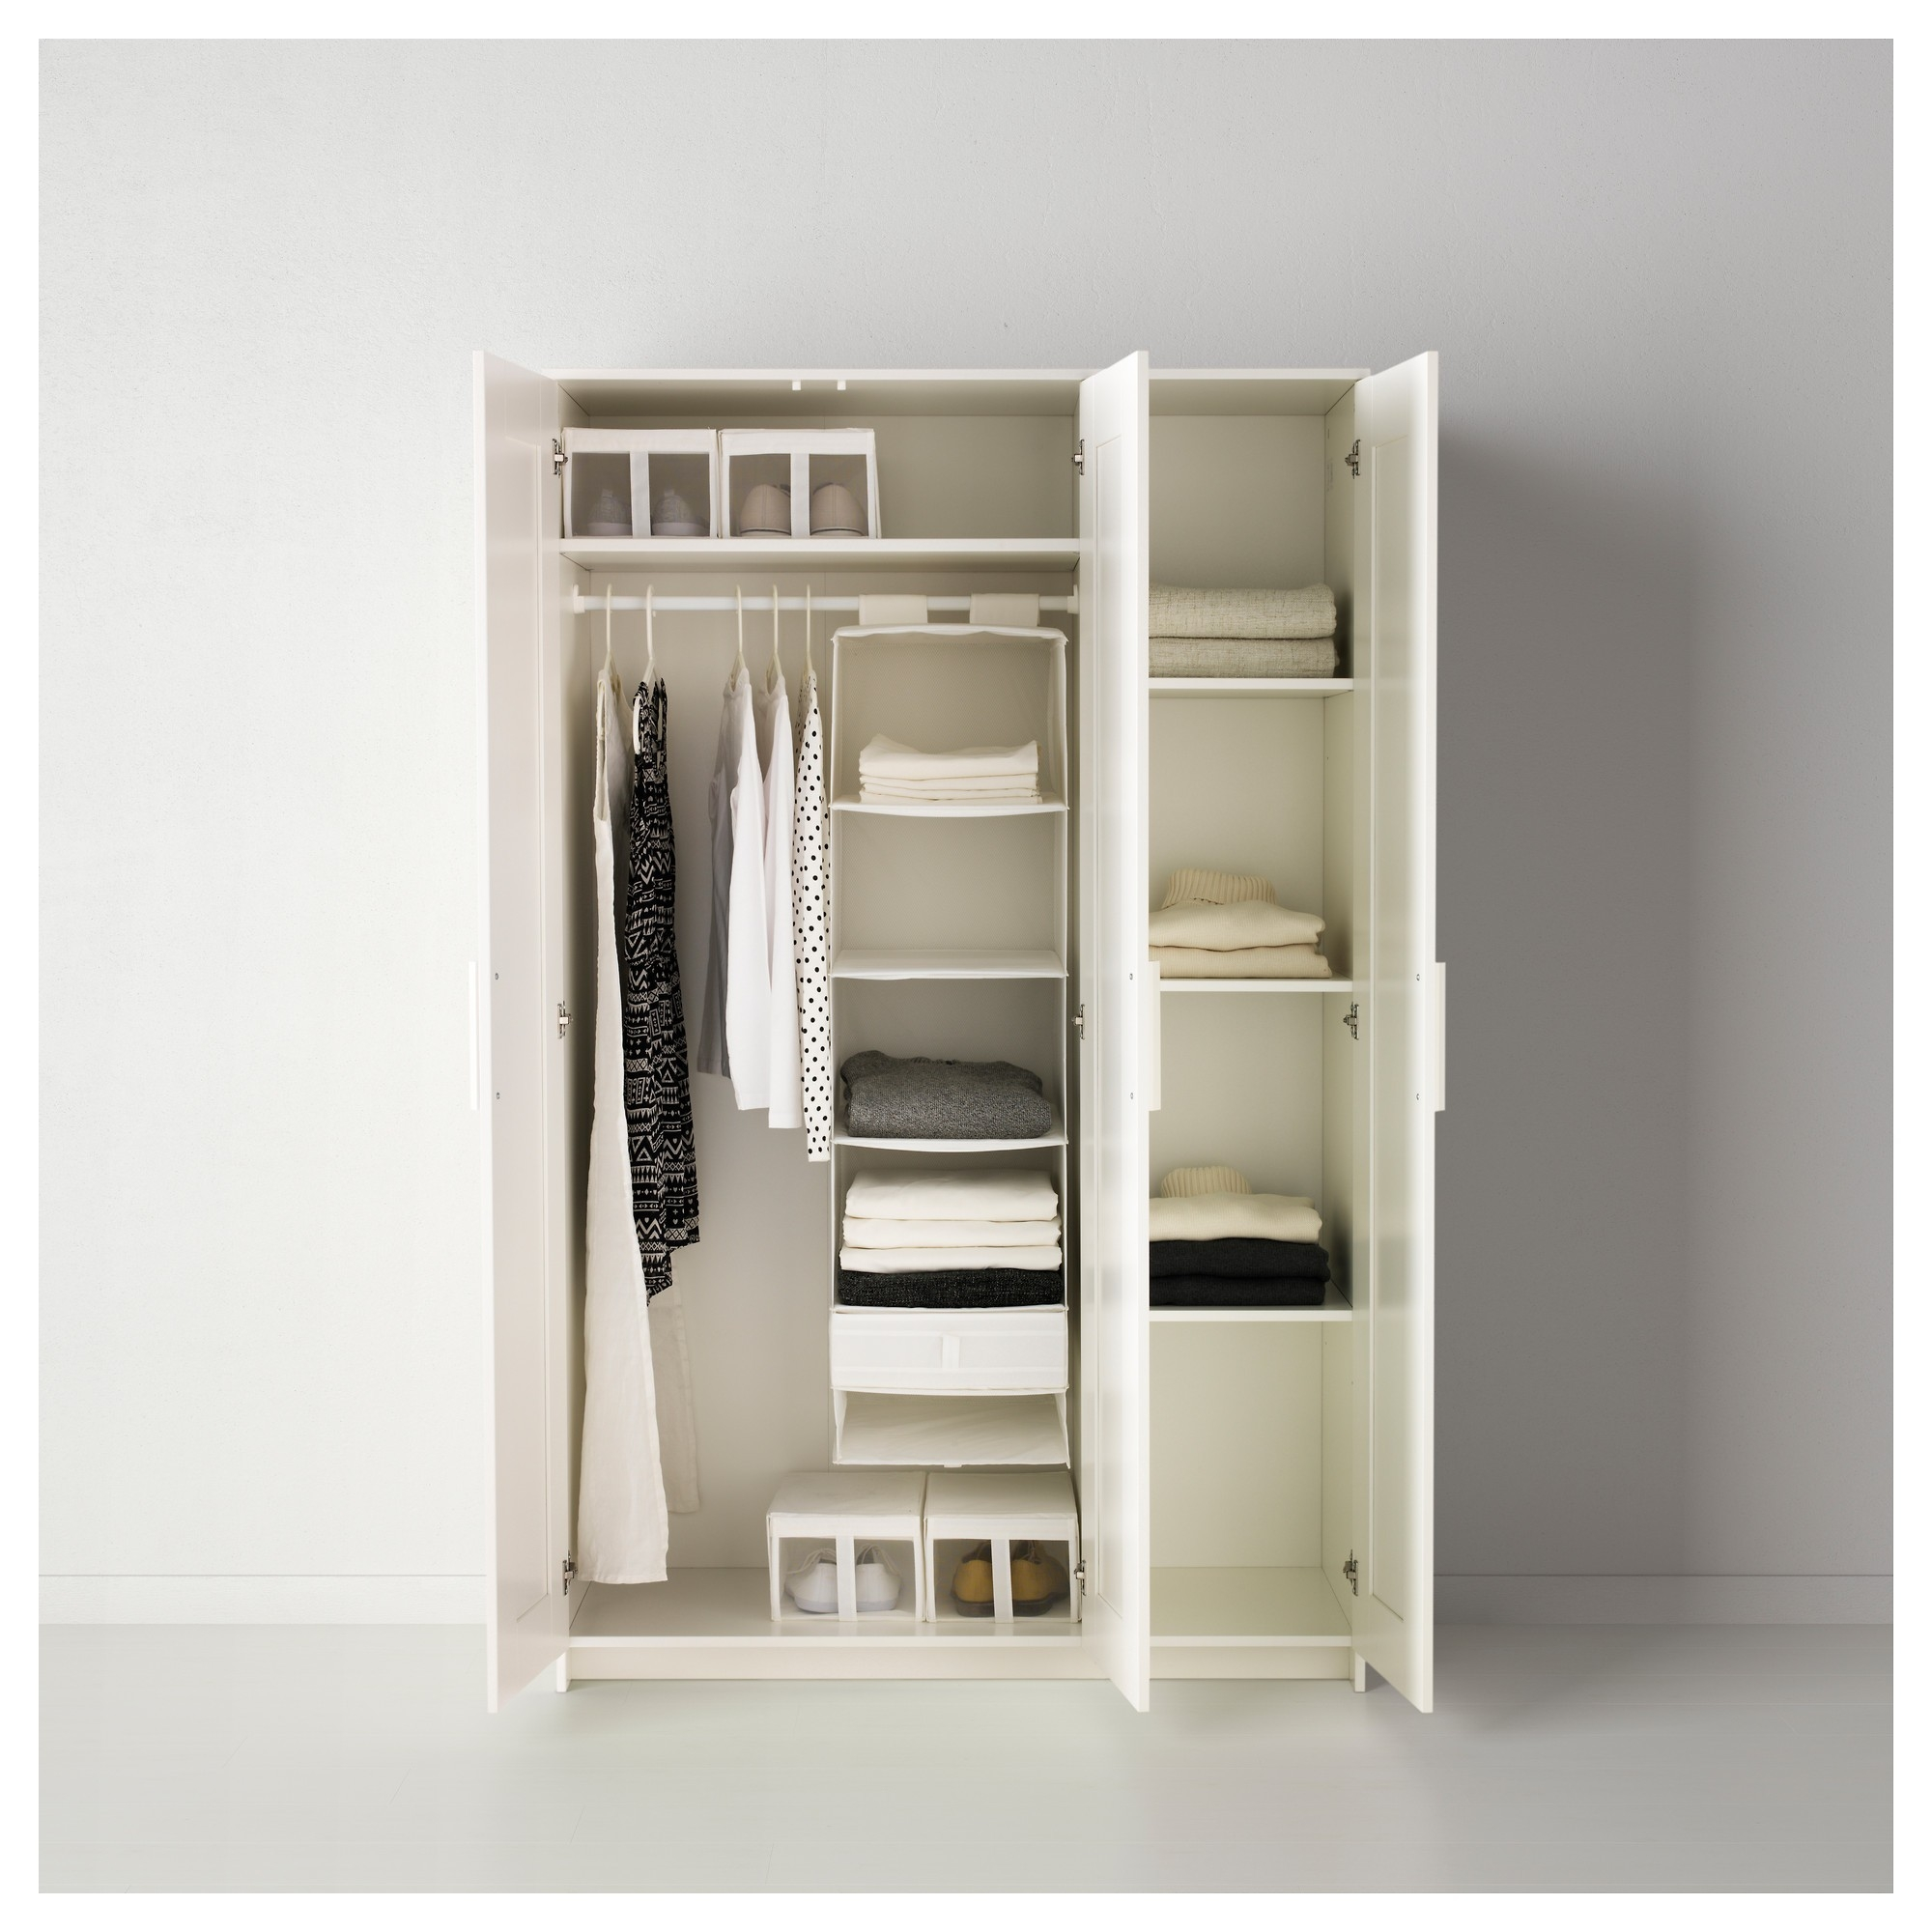 3 Door Wardrobe Storage Cabinet With 2 Drawers Best Home Pertaining To Hanging Wardrobe Shelves (Image 1 of 25)